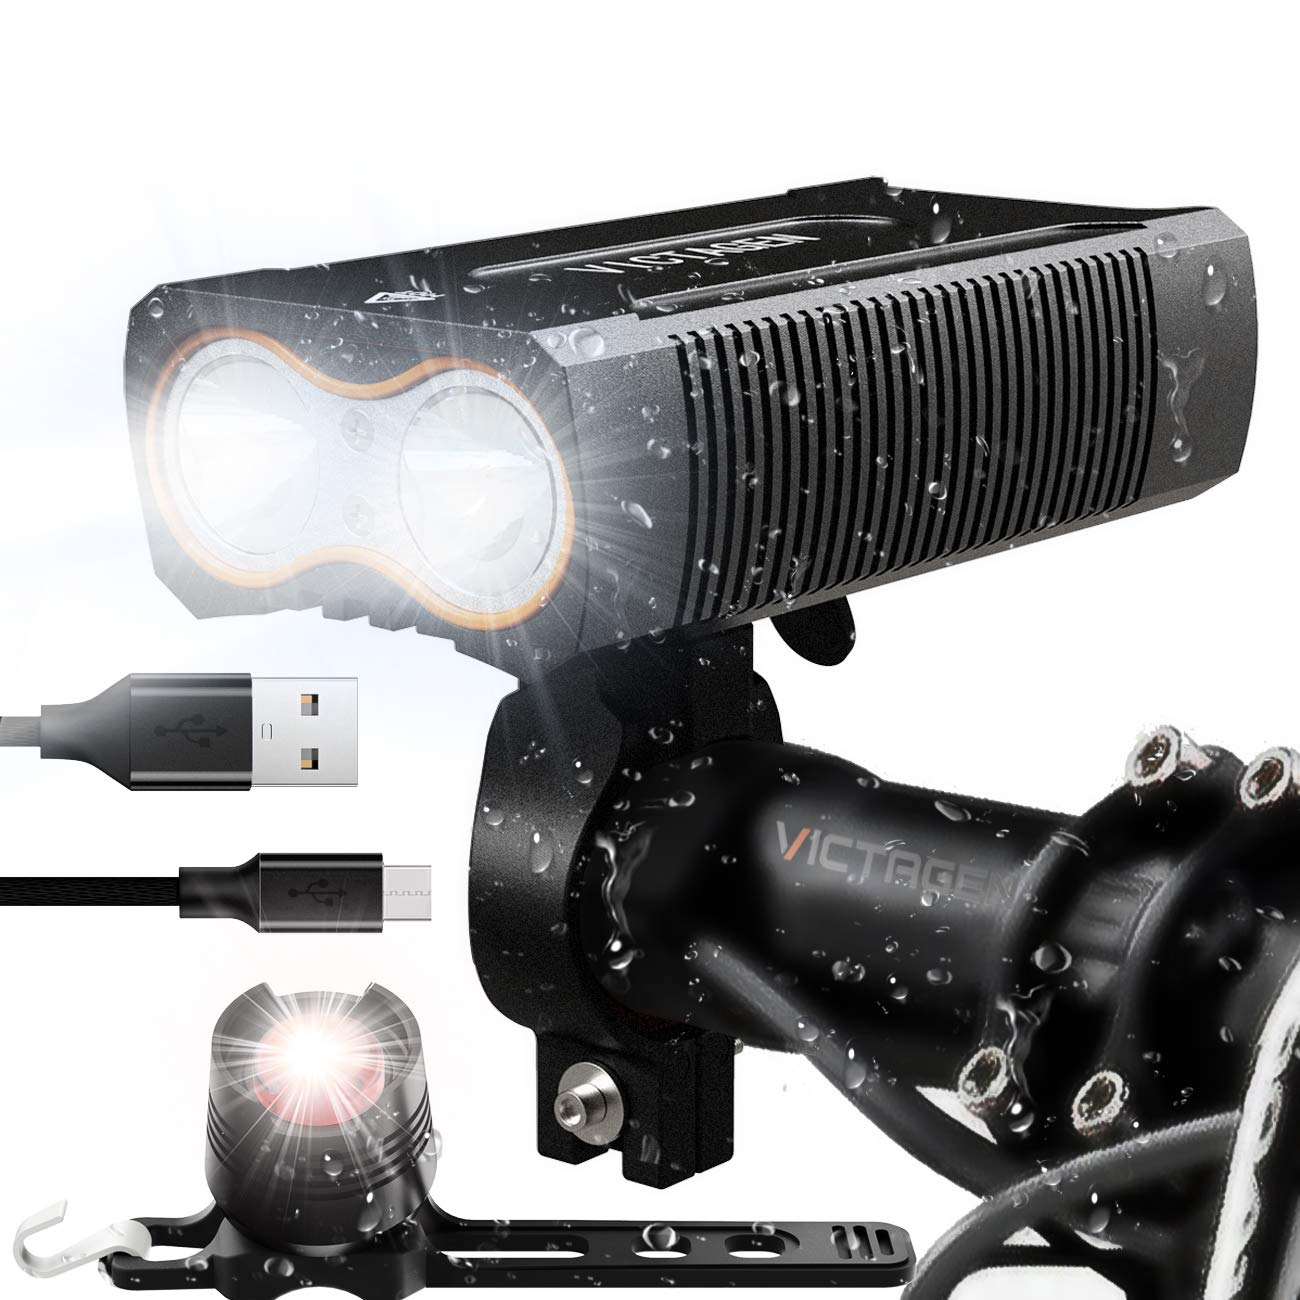 victagen USB Rechargeable Bike Light,Super Bright 2400 Lumens and Free Bike Tail Light Helmet Light